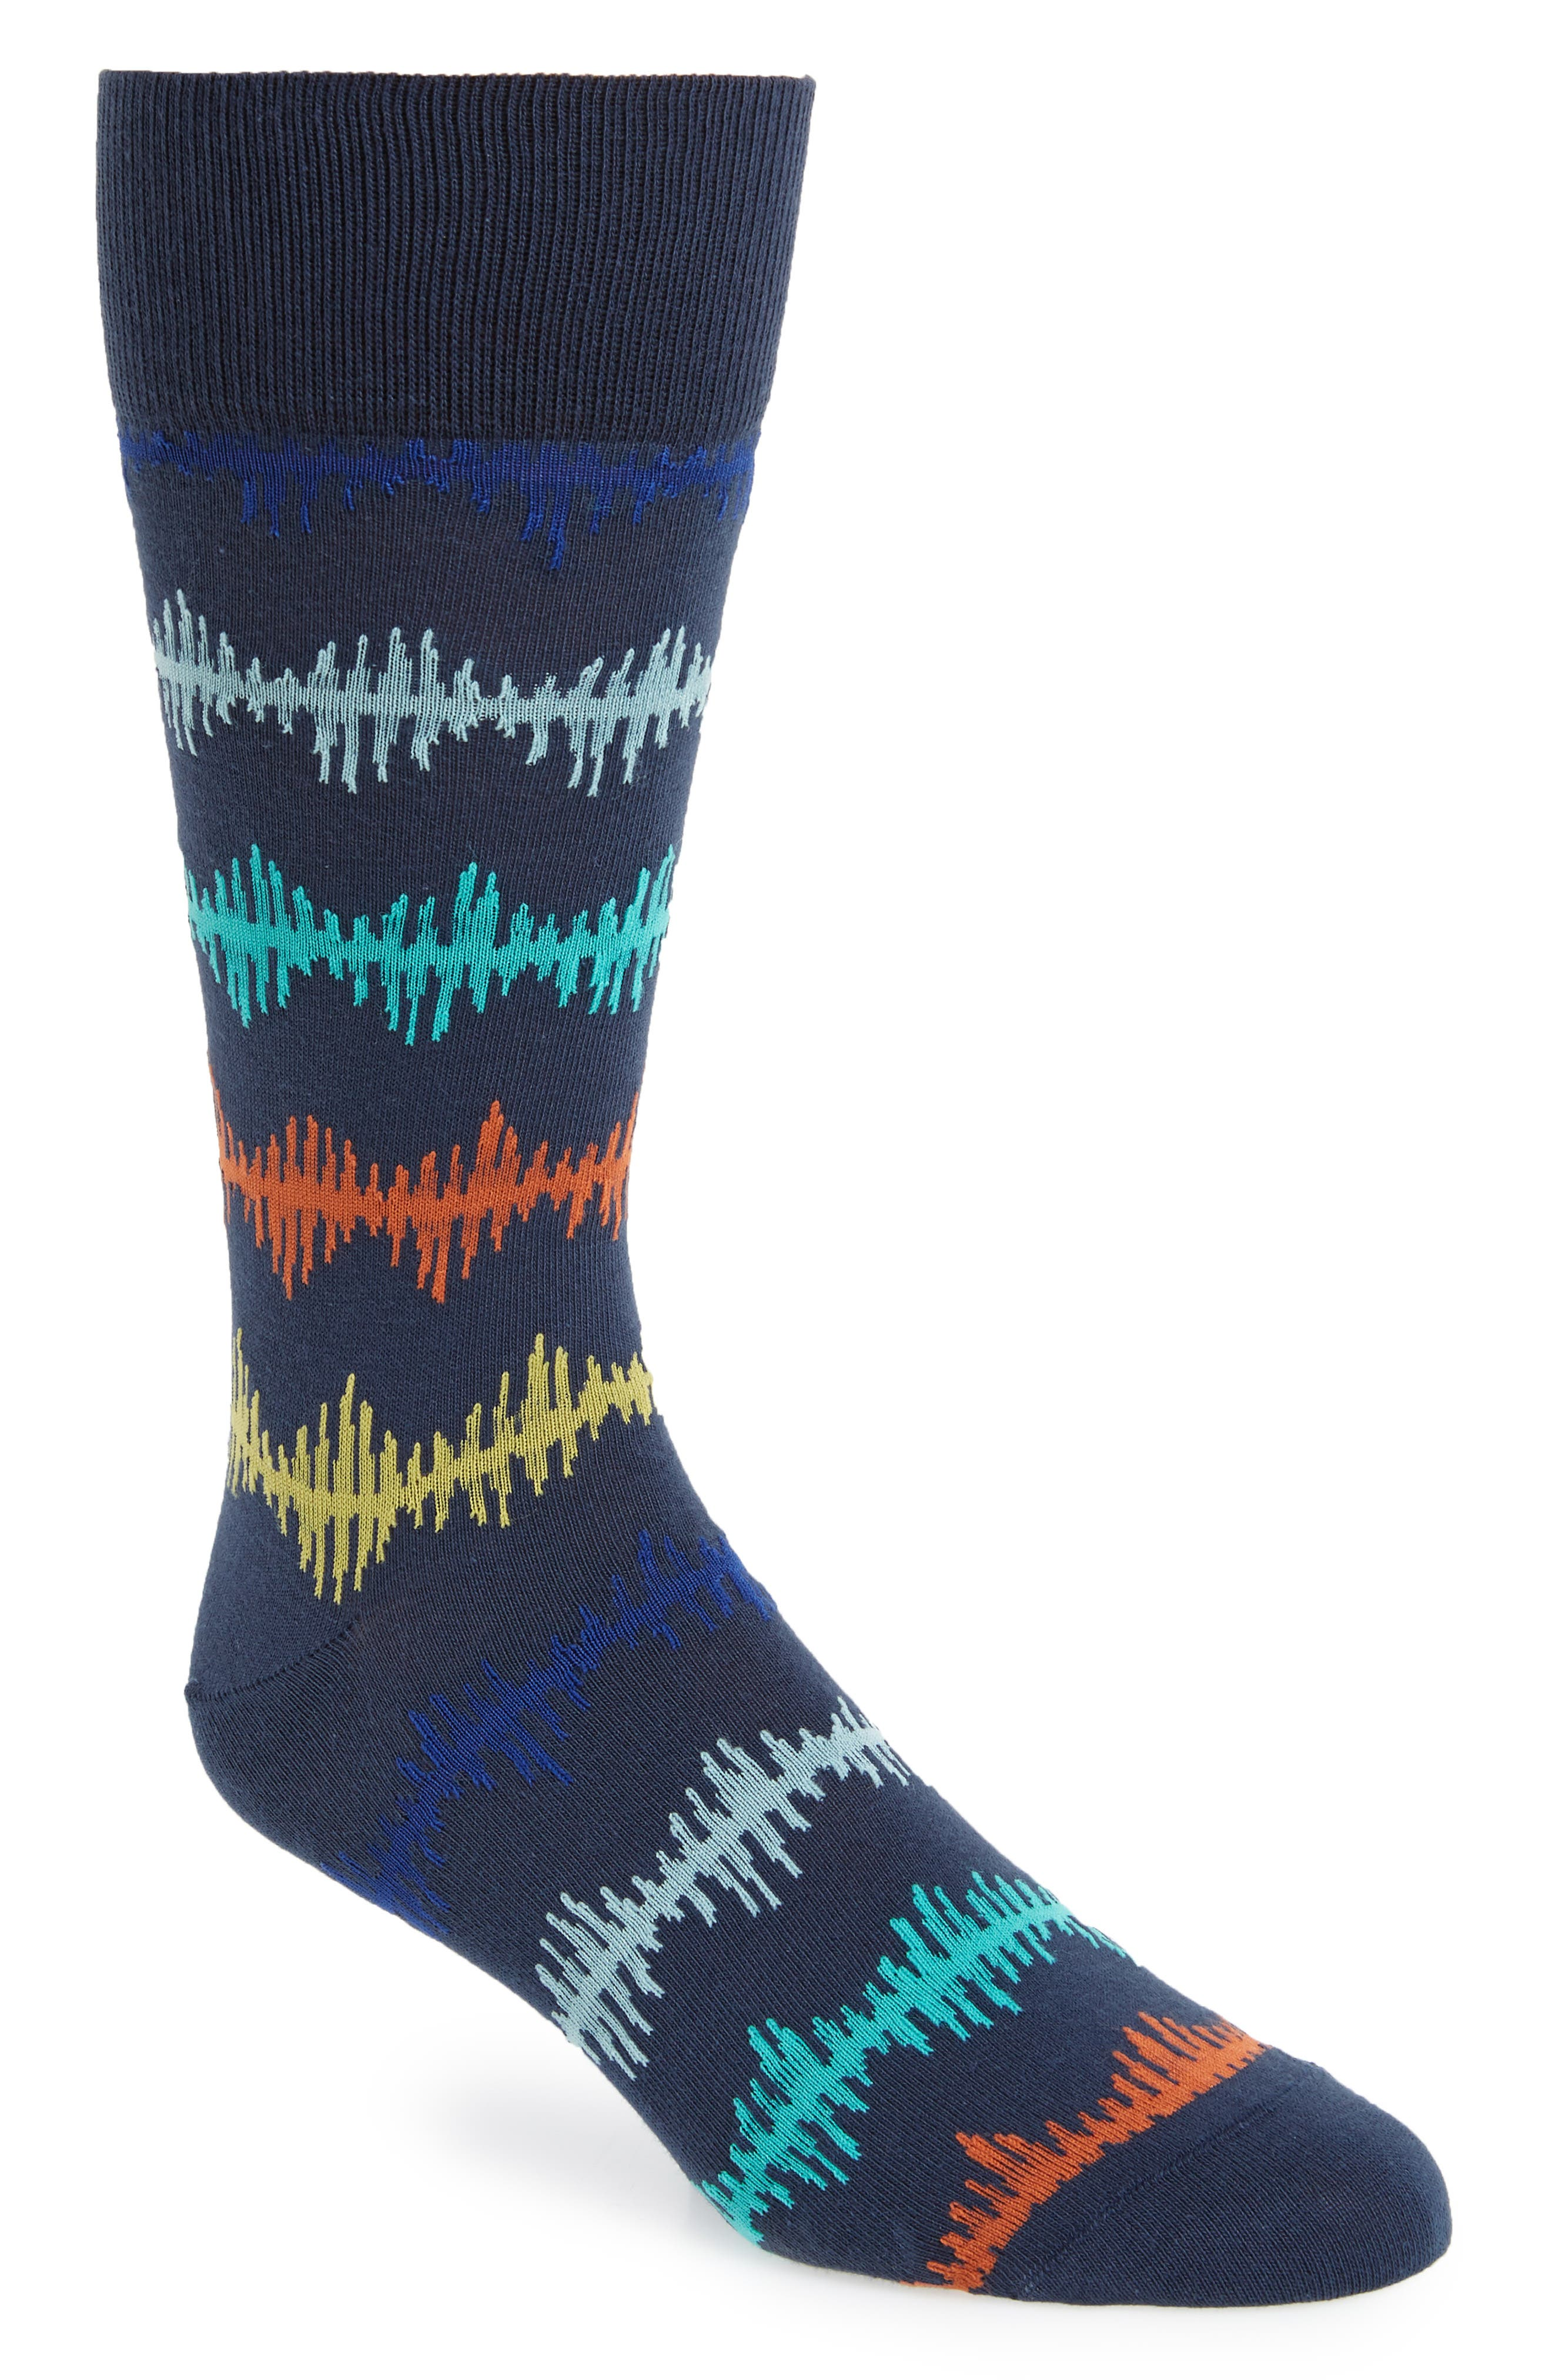 Calibrate Pulse Wave Socks